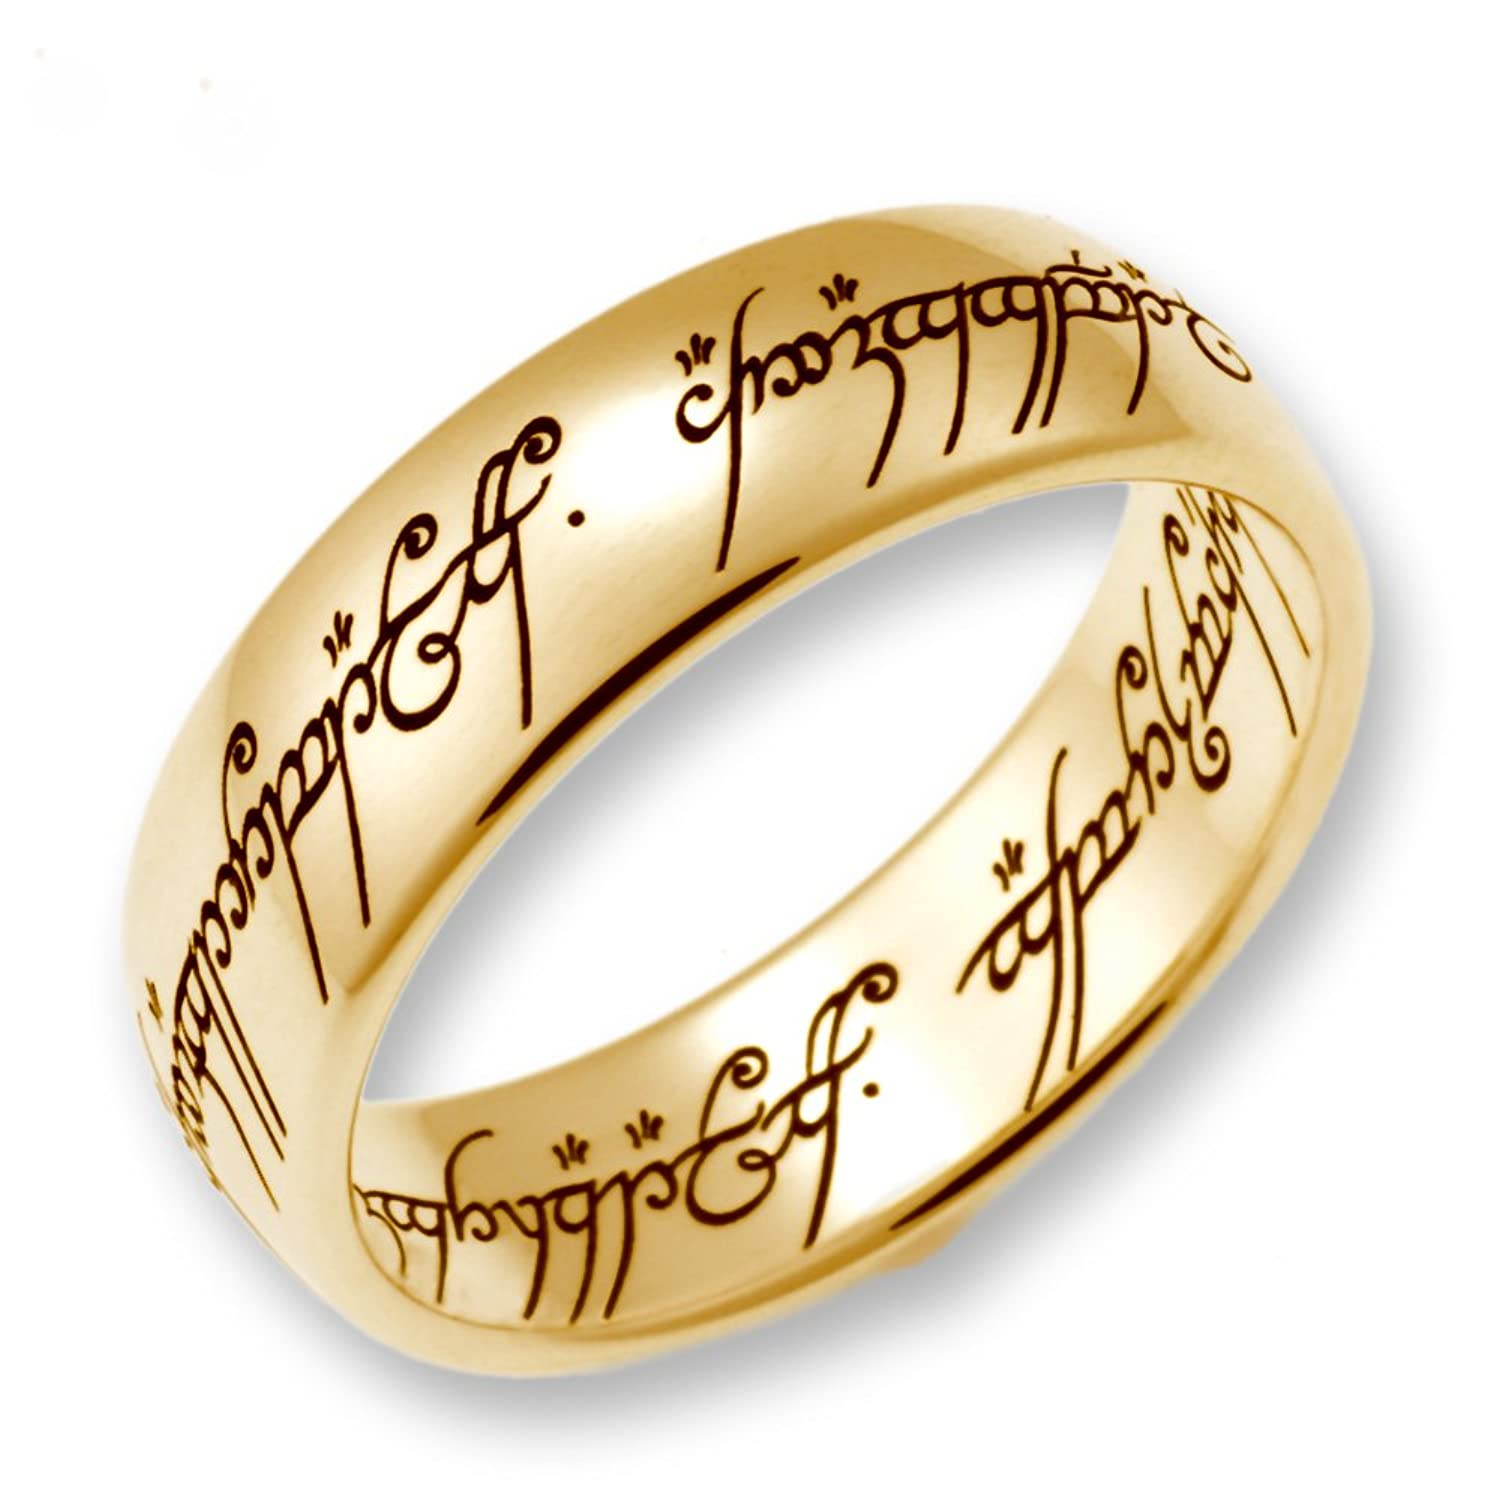 Schumann Design Lord of The Rings The e Ring made of 333 Gold